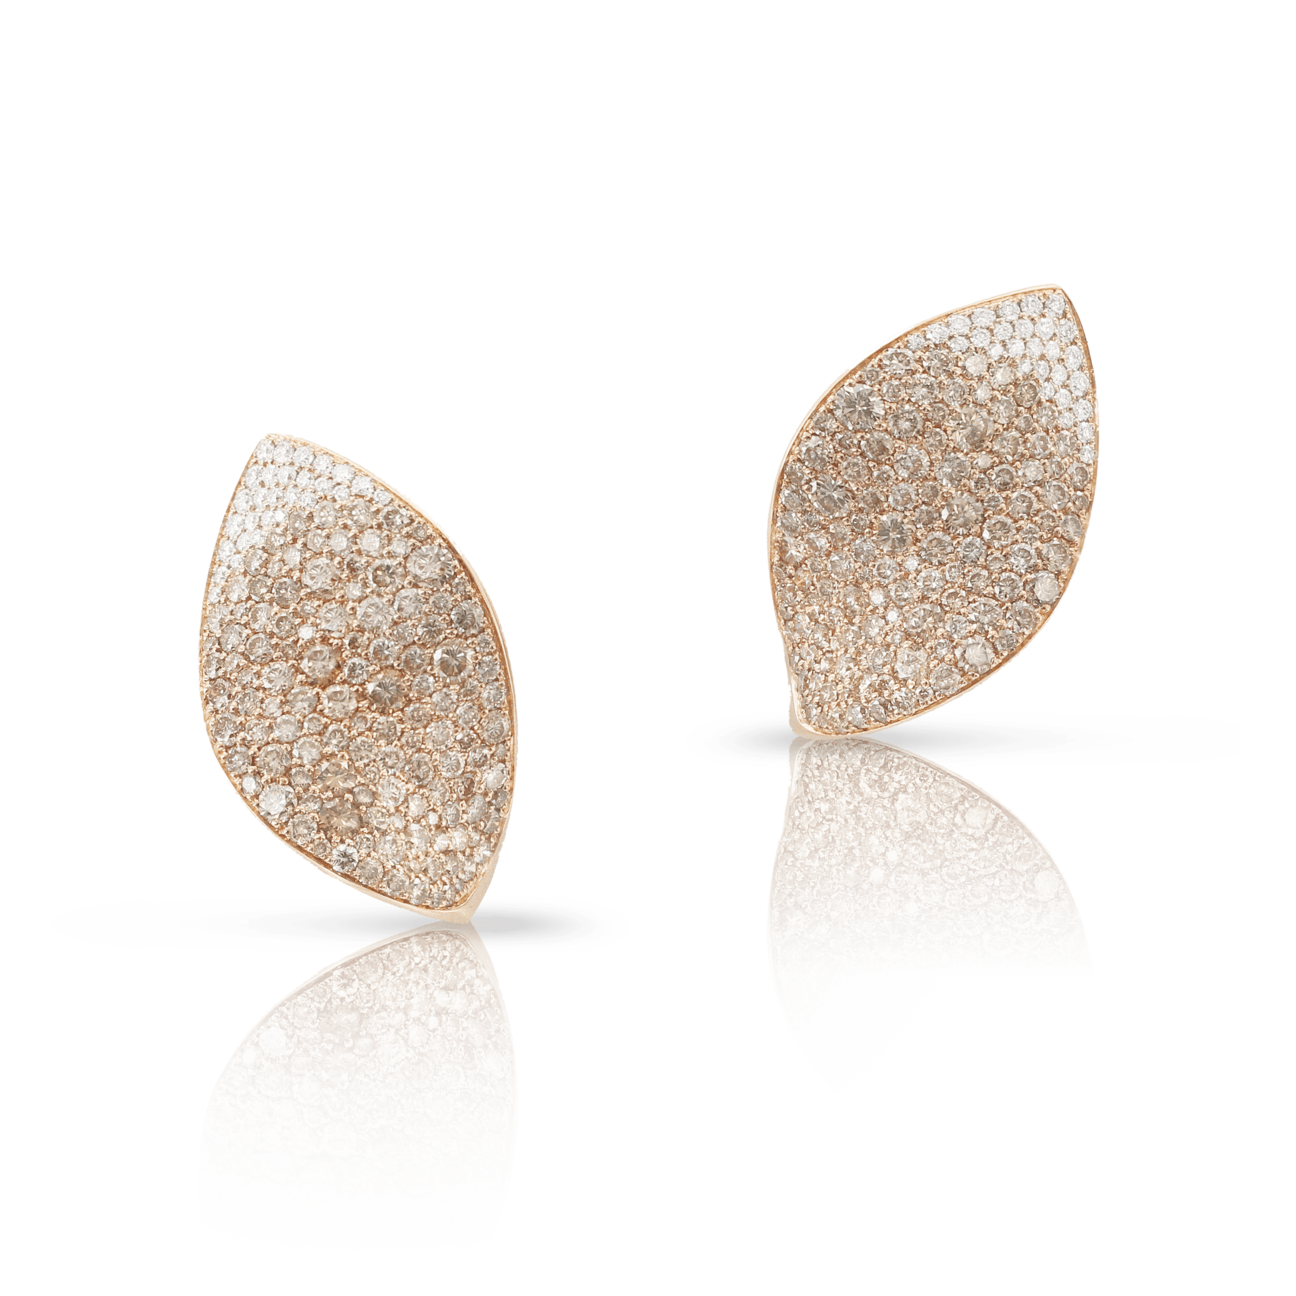 GIARDINI SEGRETI EARRINGS WITH WHITE AND CHAMPAGNE DIAMONDS